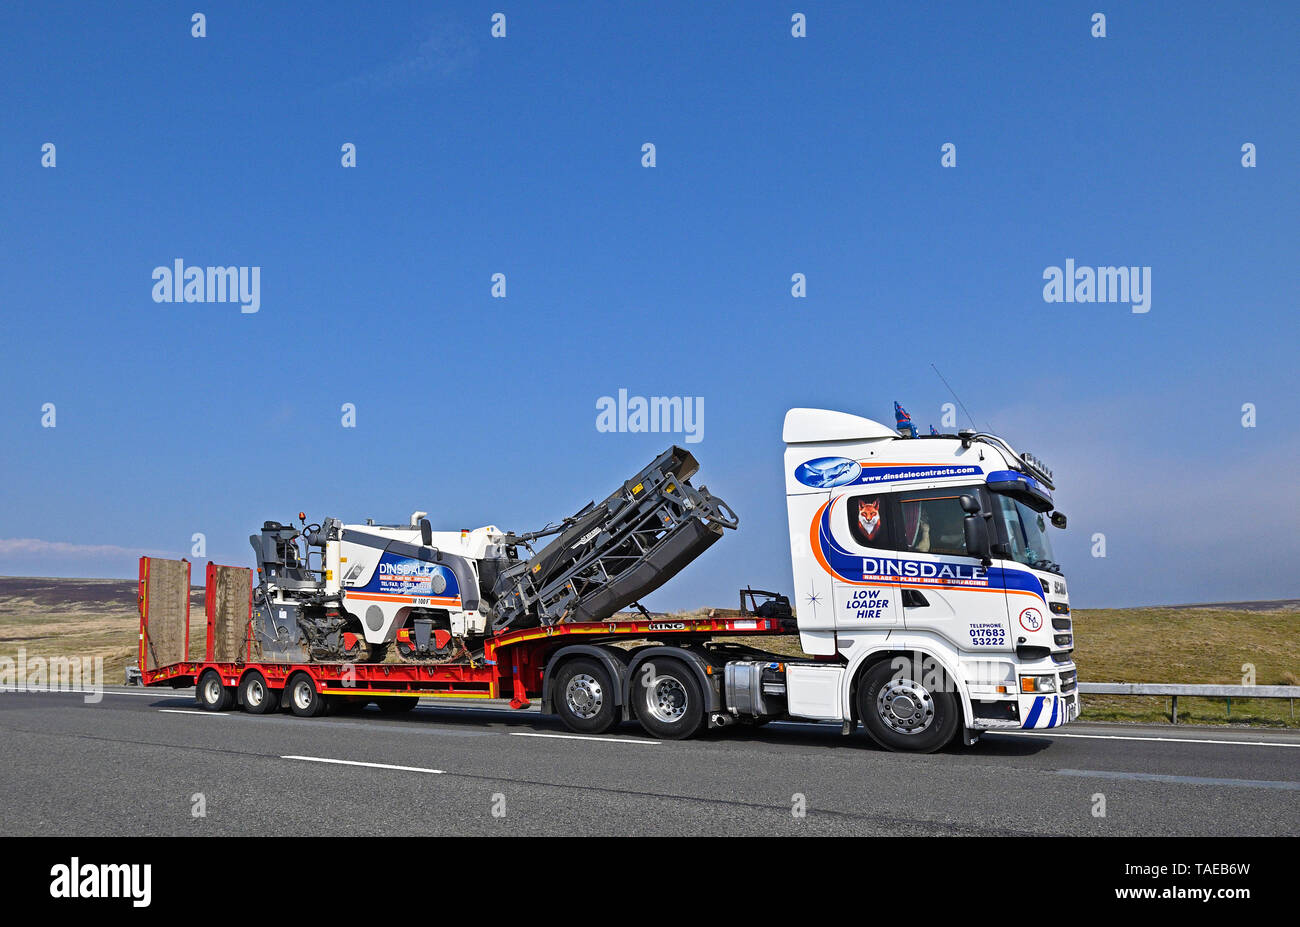 Dinsdale Stock Photos & Dinsdale Stock Images - Alamy